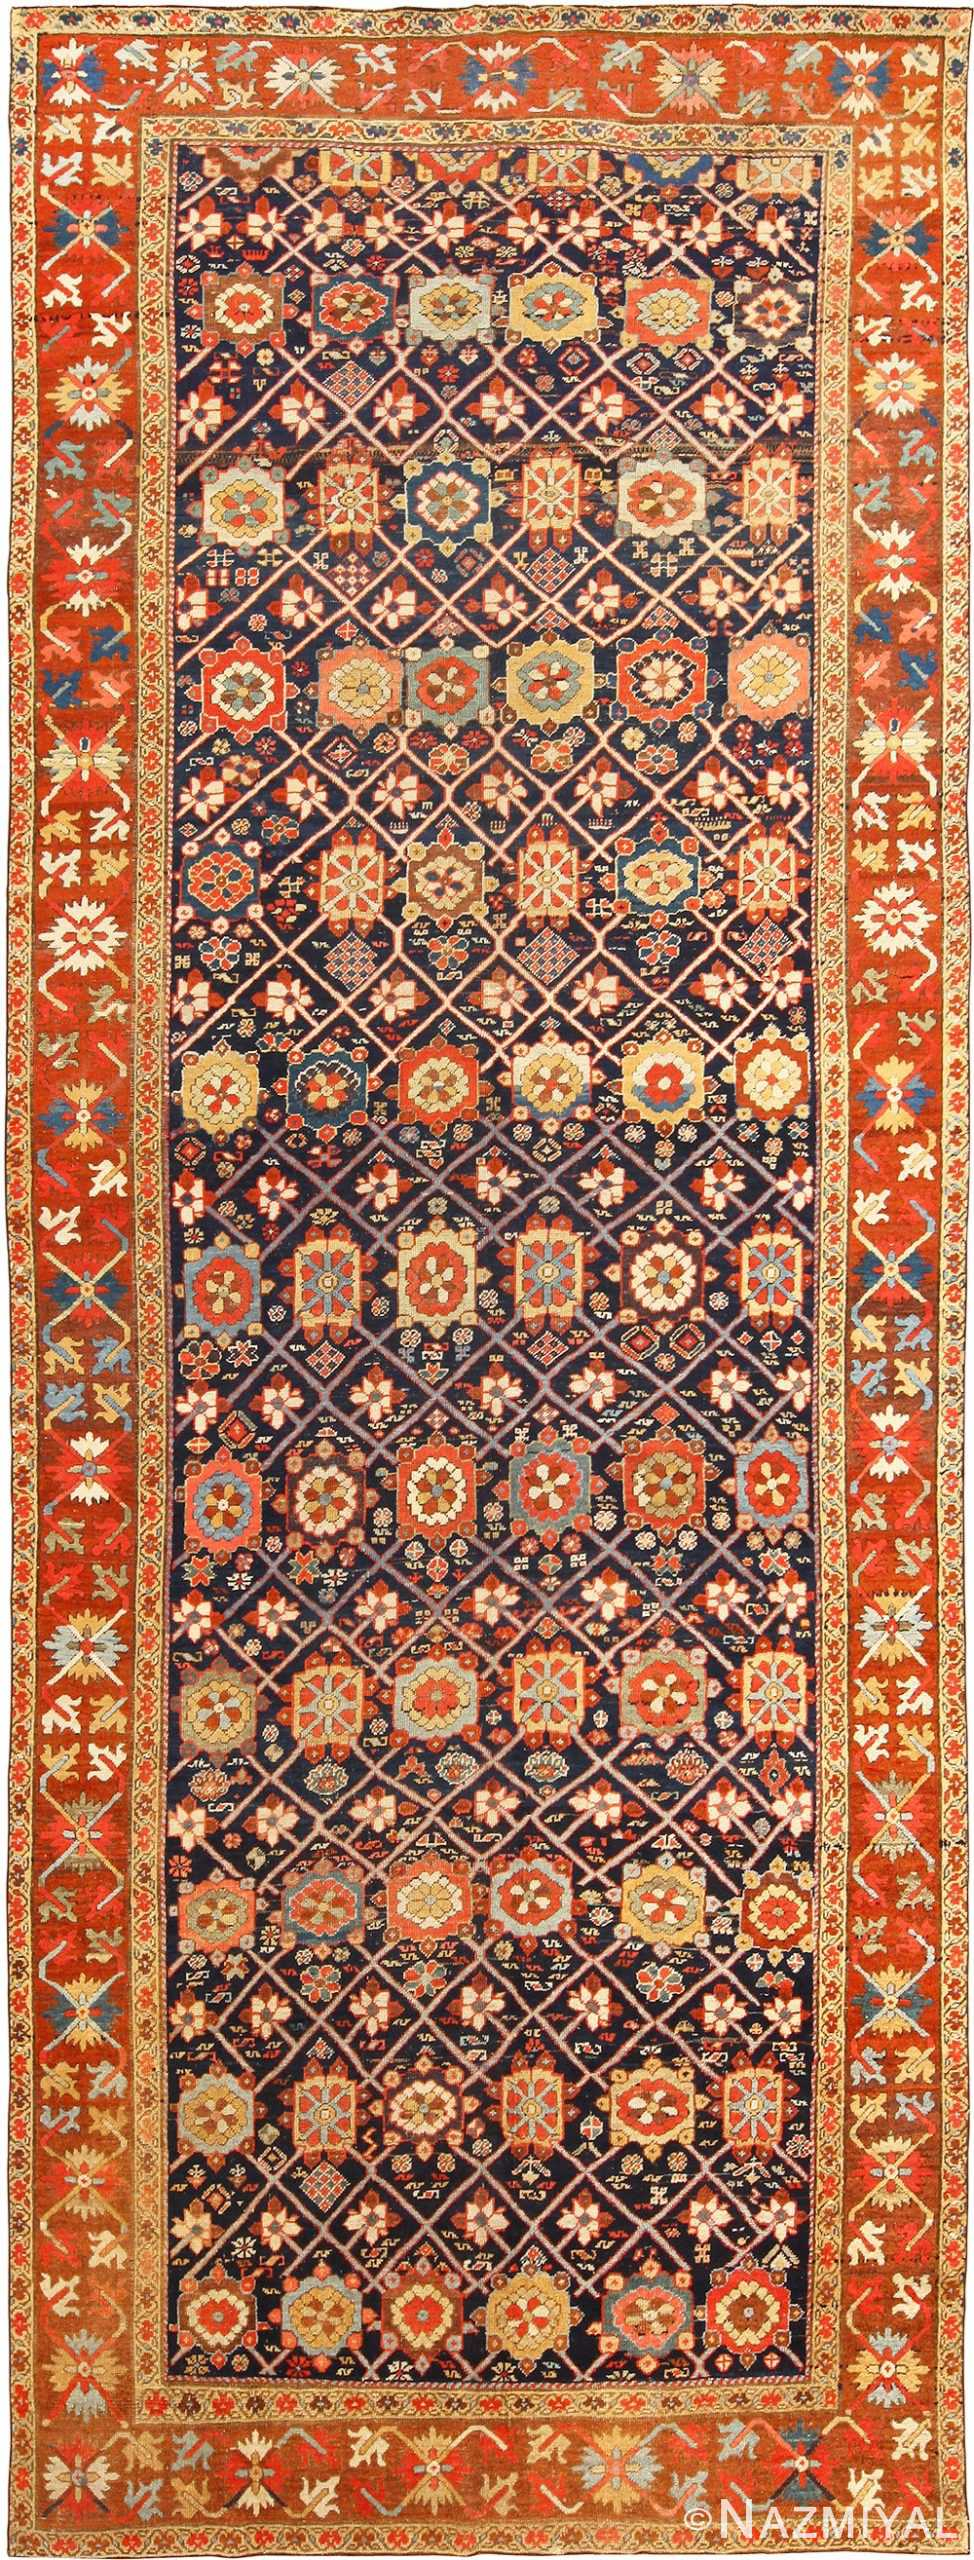 Antique Tribal Northwest Persian Gallery Size Rug 49161 Nazmiyal